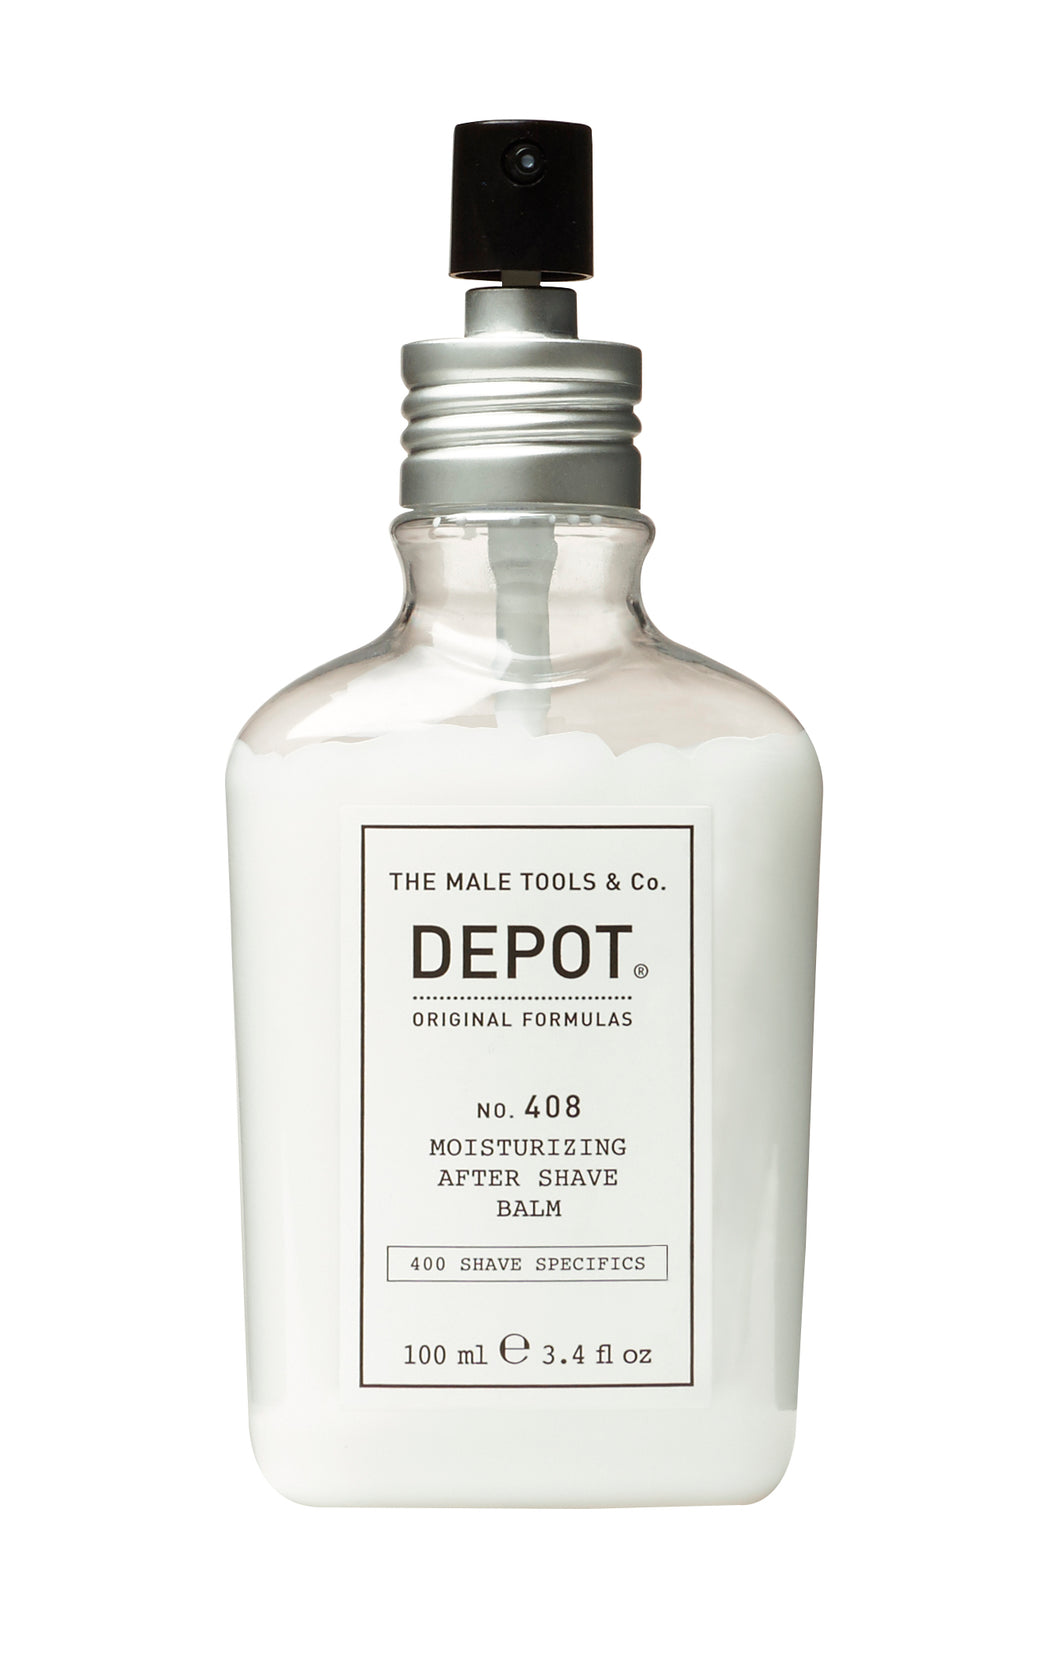 DEPOT MALE TOOL NO. 408 MOISTURIZING AFTER SHAVE BALM - FRESH BLACK PEPPER